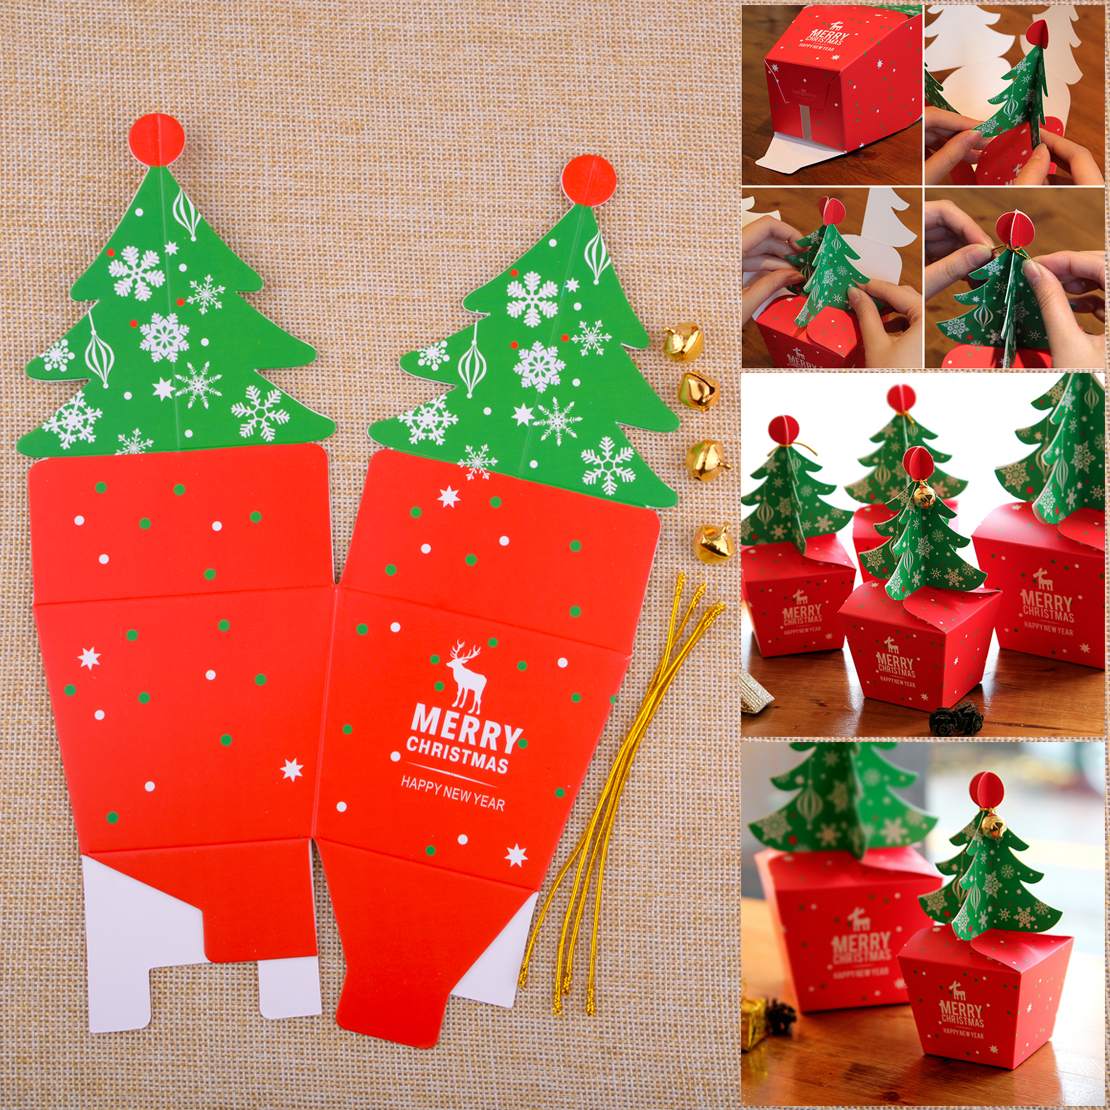 Christmas Candy Gifts.5pcs Christmas Candy Gifts Apple Box Cupcakes Dessert Cookies Xmas Tree Pack Box Ebay